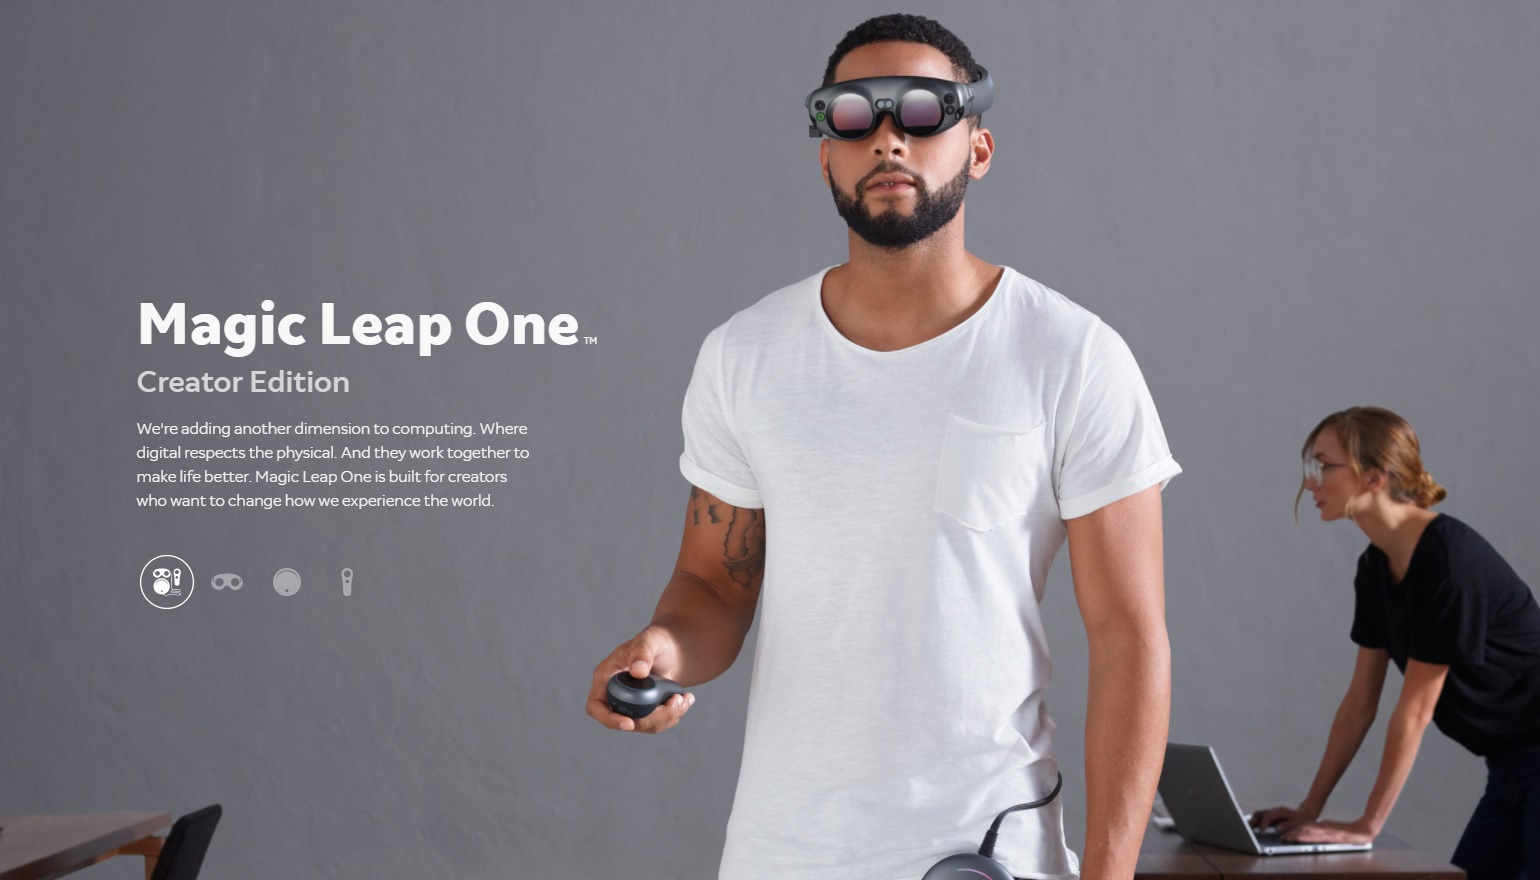 Eerste beelden van de augmentedrealitybril Magic Leap One